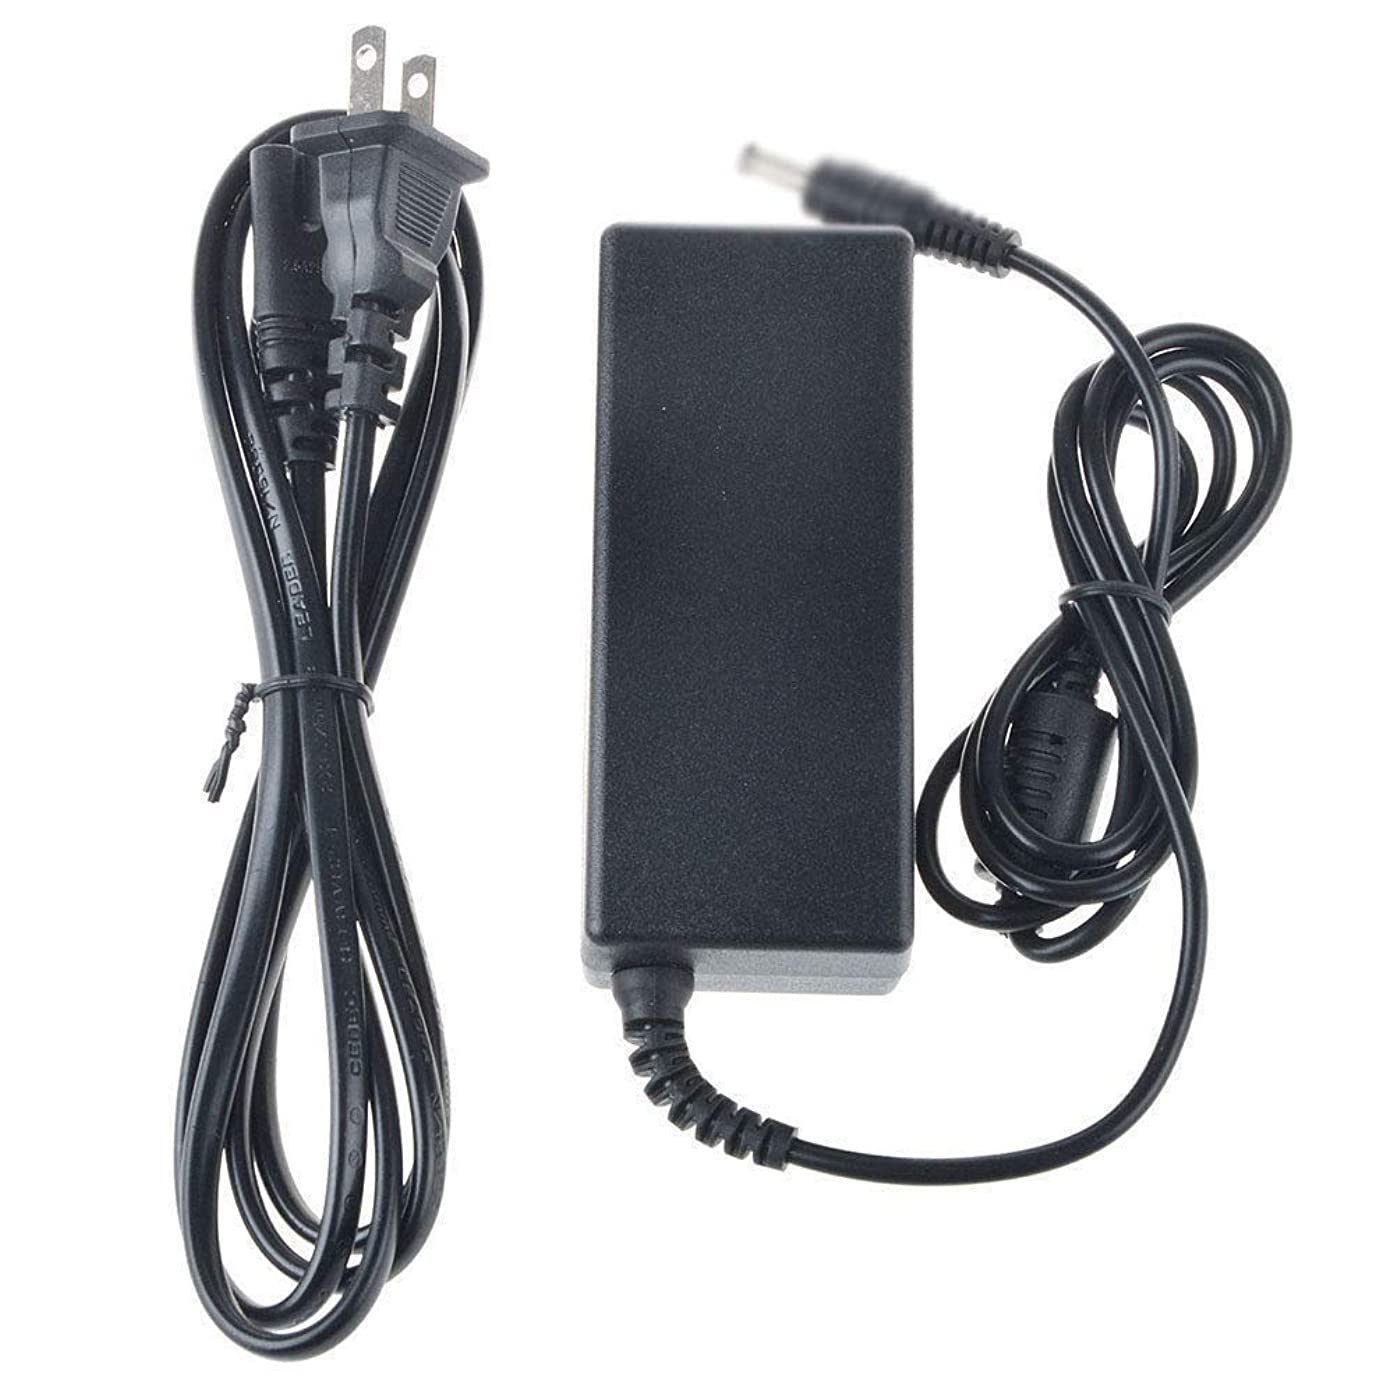 GreatPowerDirect 65w Ac Adapter Power Supply Cord for HP Pavillion DV8000 DV9000 ZT3100 Charger